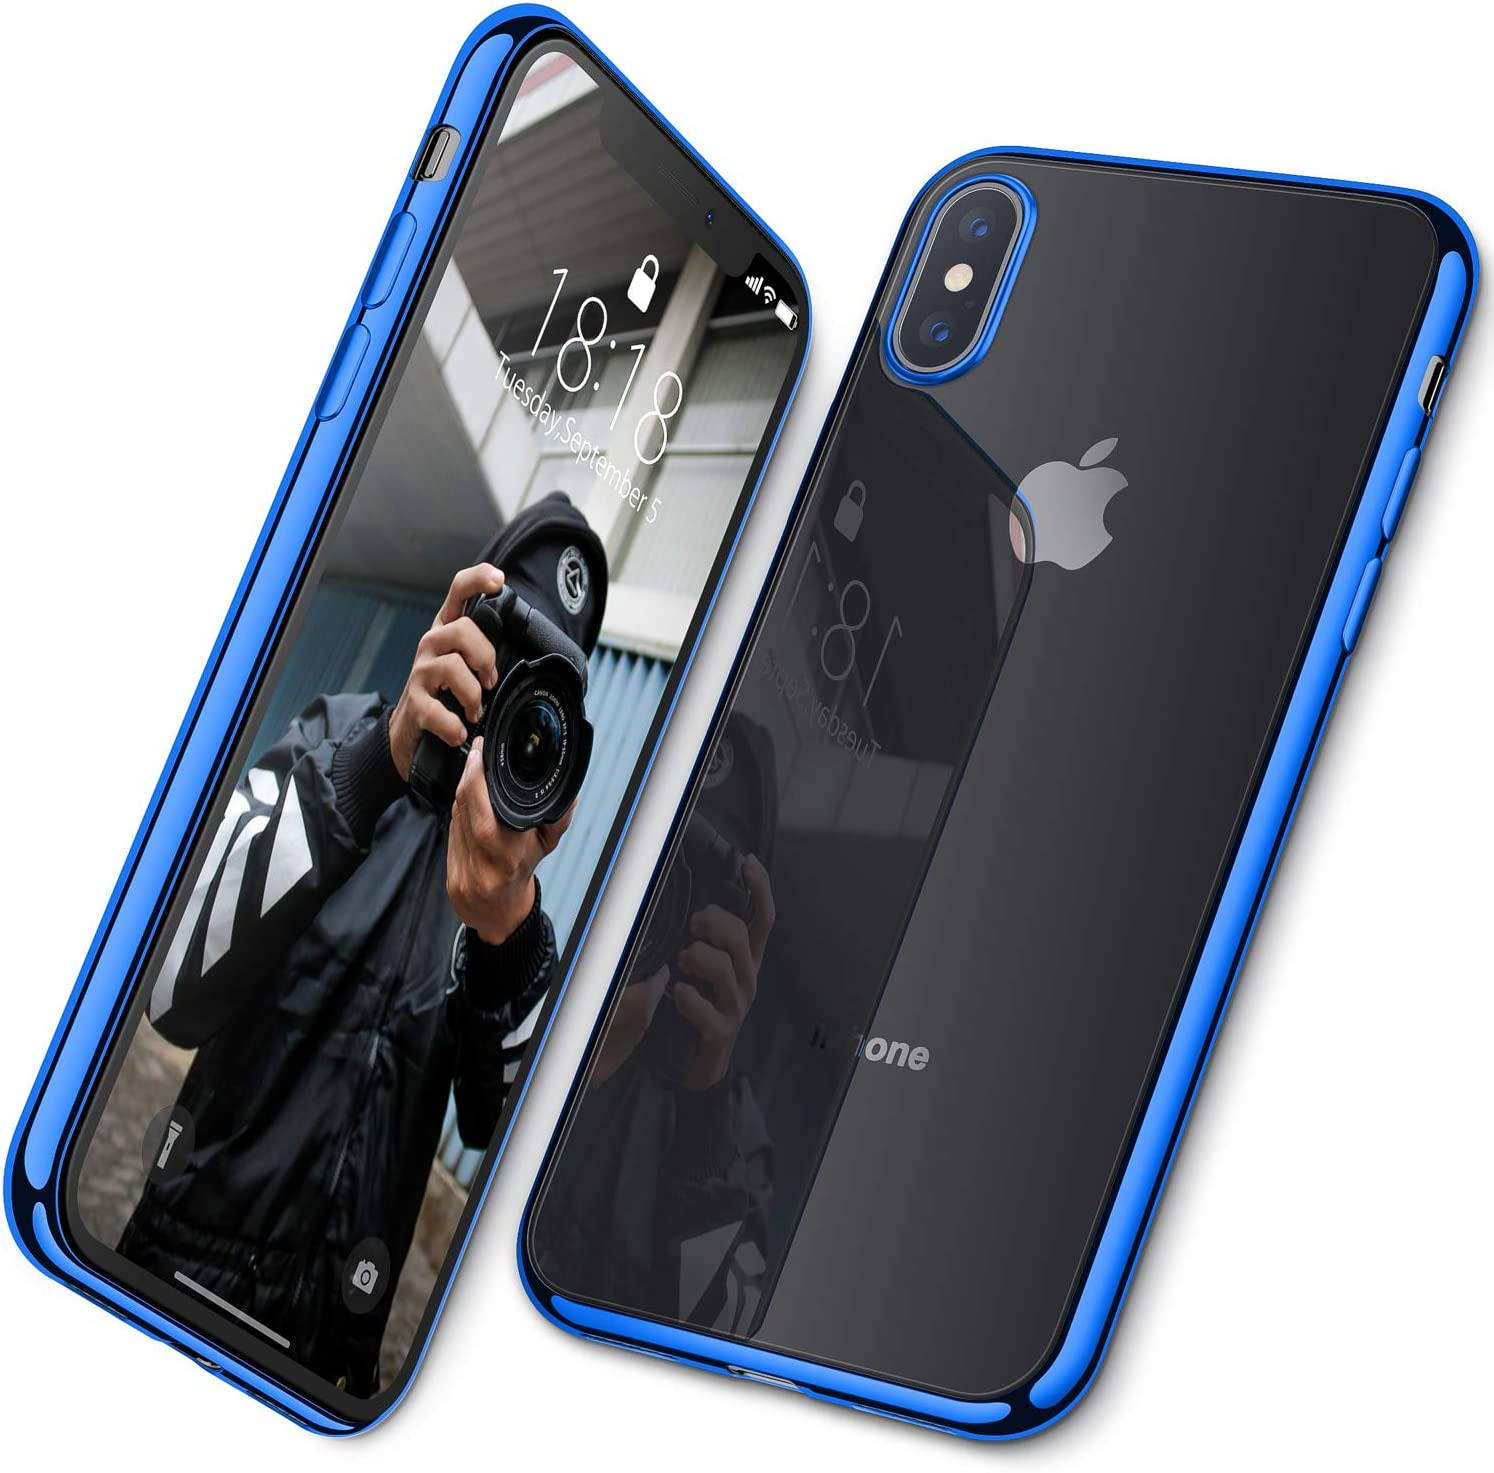 DTTO Case for iPhone Xs Max, [Lightening Series] Clear Stylish Flexible Case with Metal Luster Edge for Apple iPhone Xs Max 6.5 Inch (2018 Released)-Blue